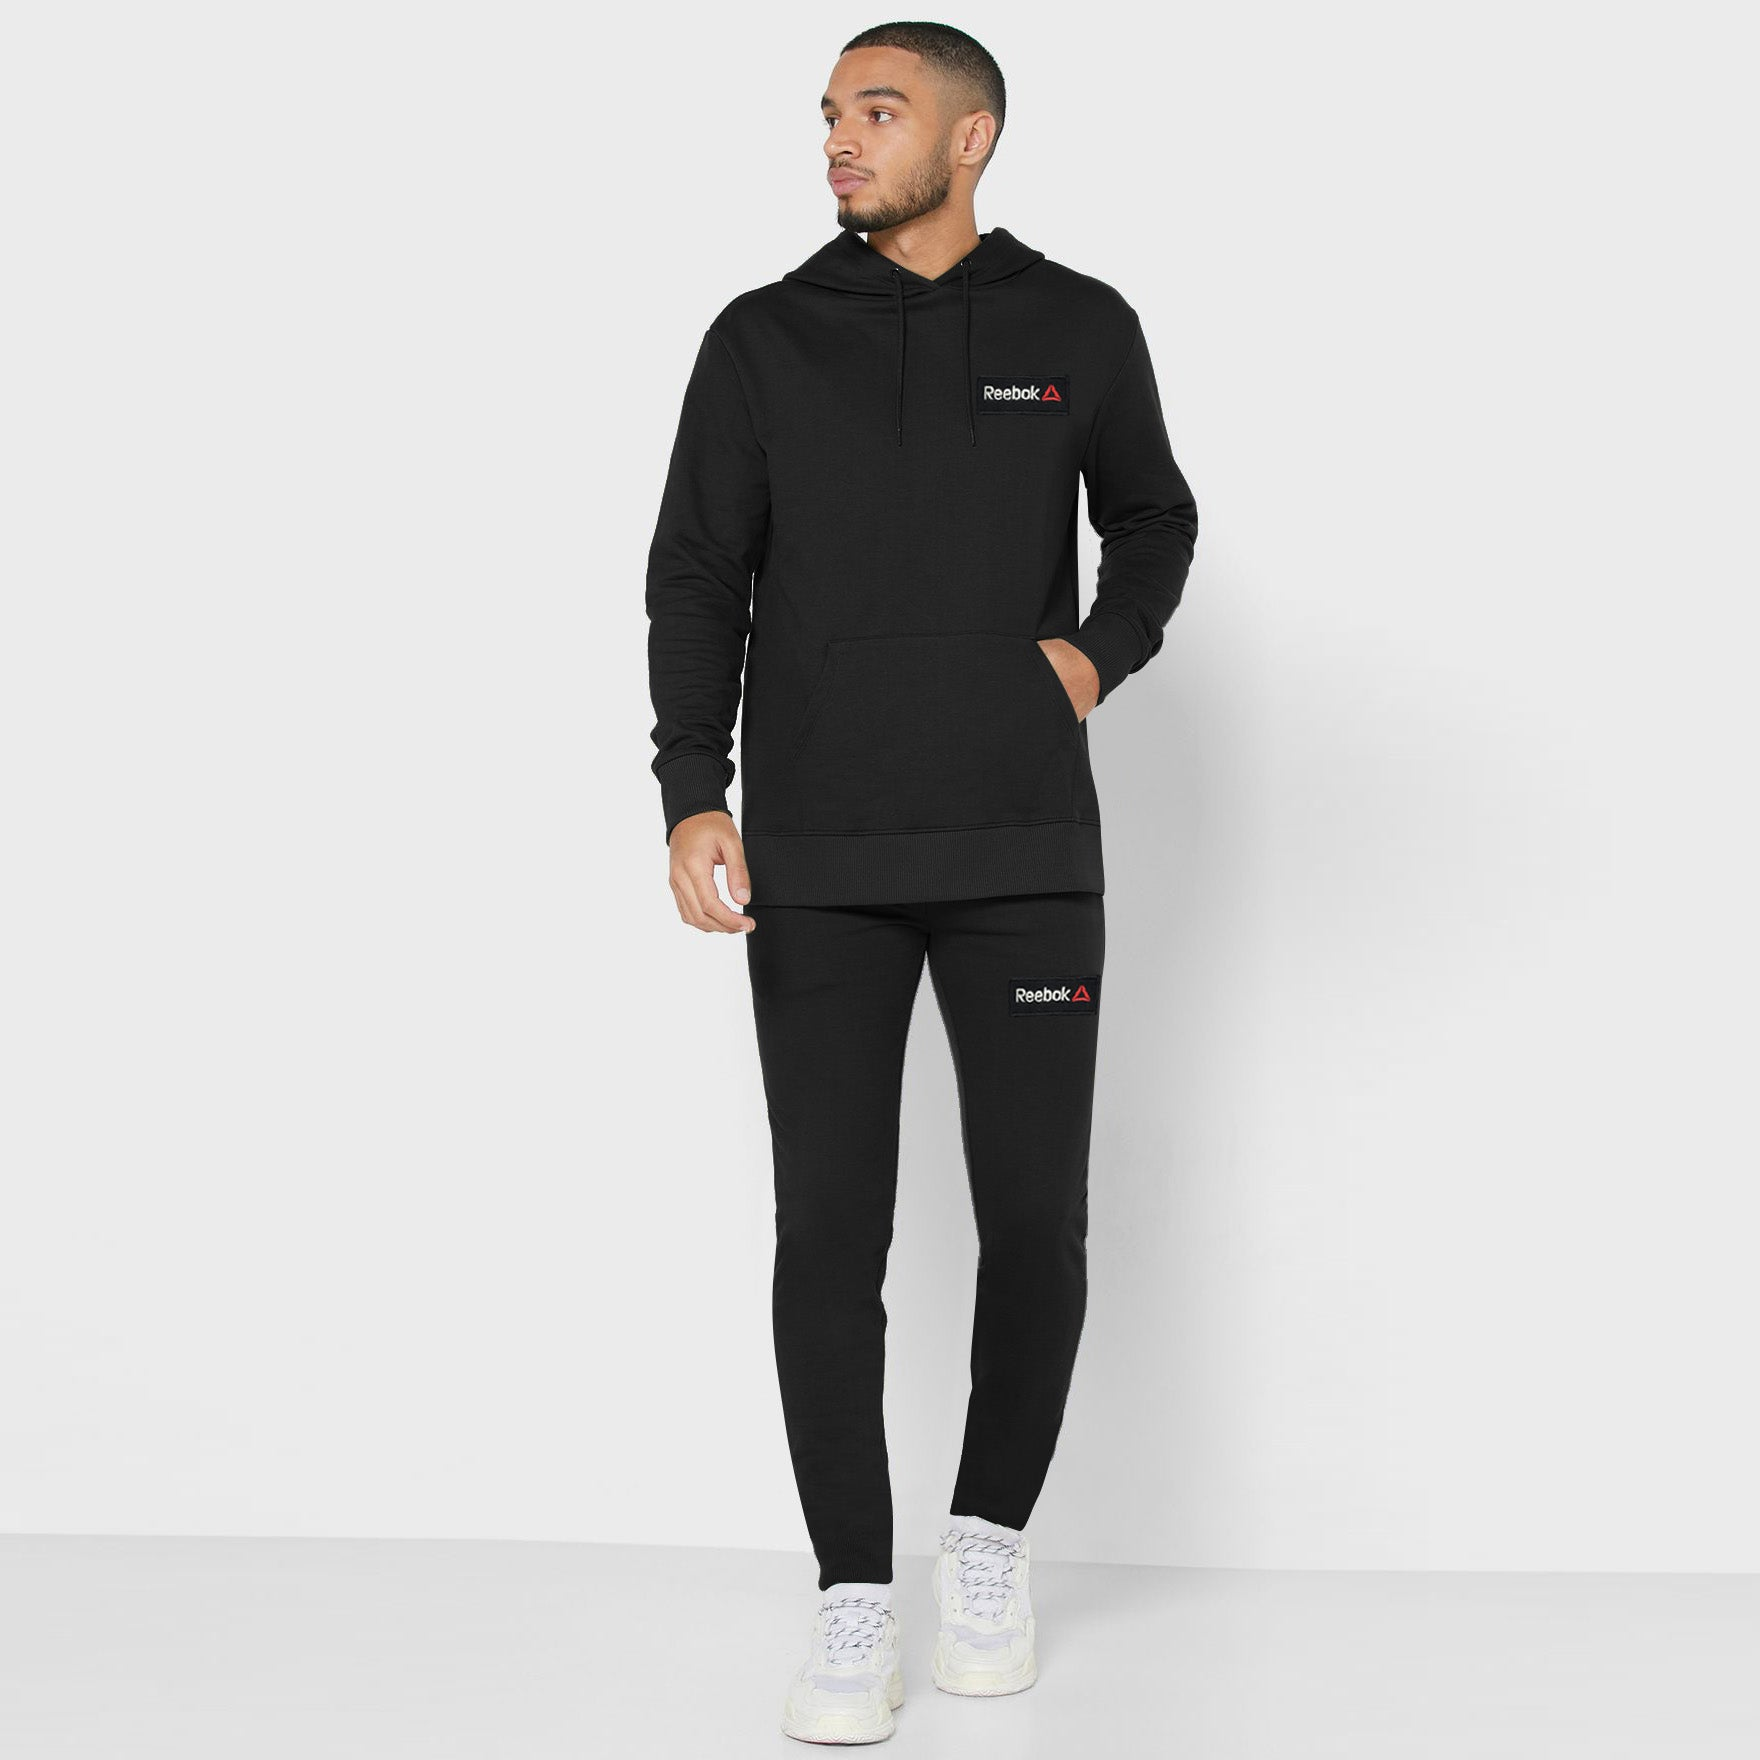 RB Regular Fit Fleece Pullover Track Suit For Men-Black-BE13251